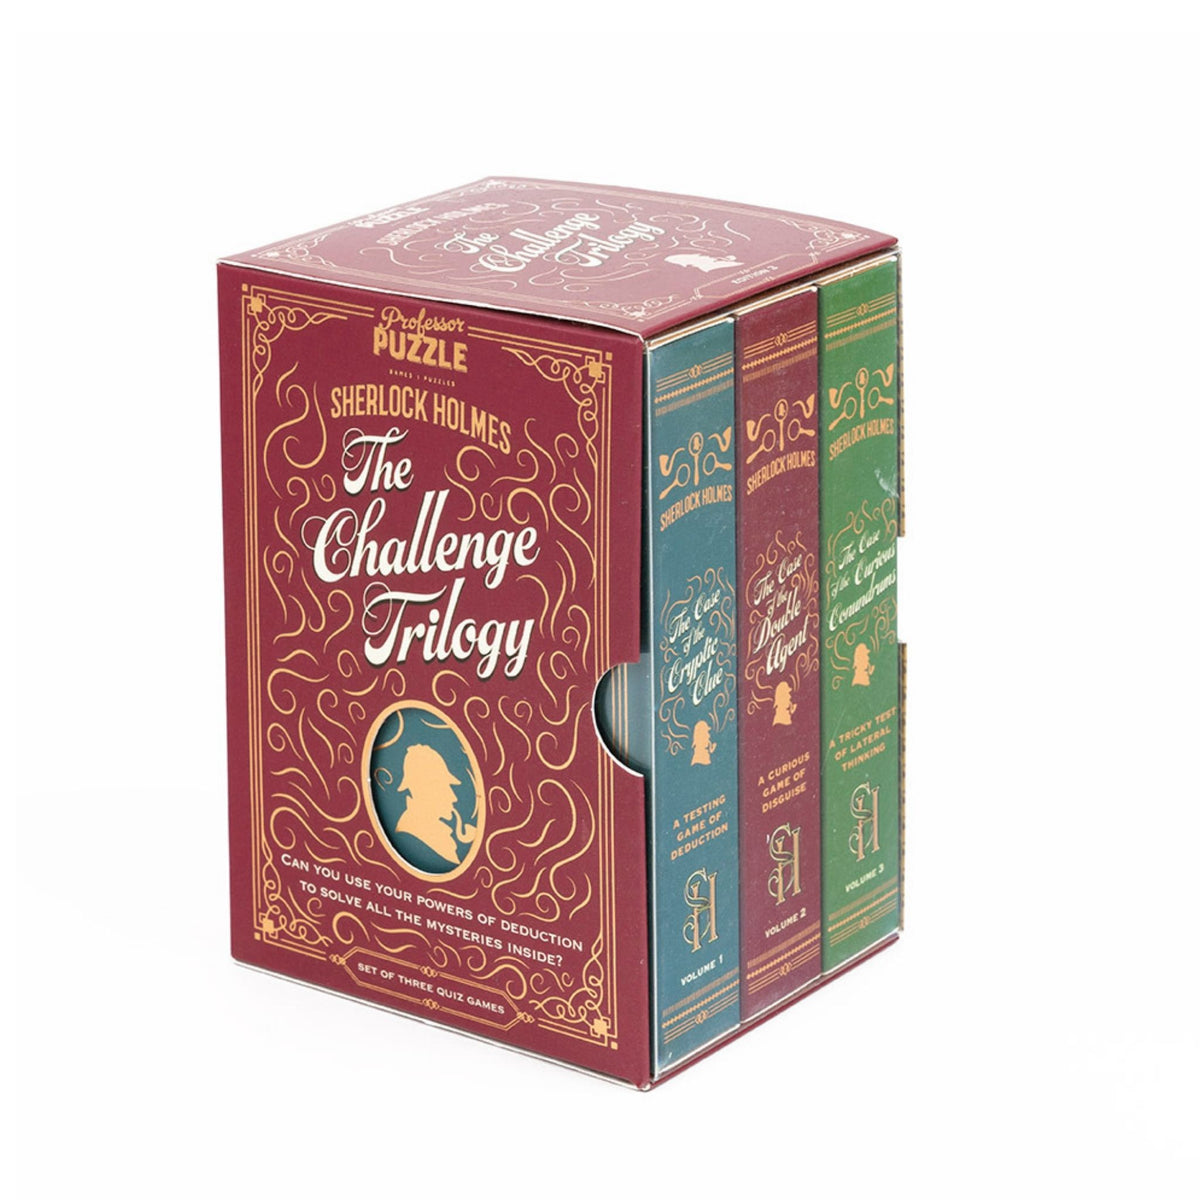 Sherlock Holmes: The Challenge Trilogy